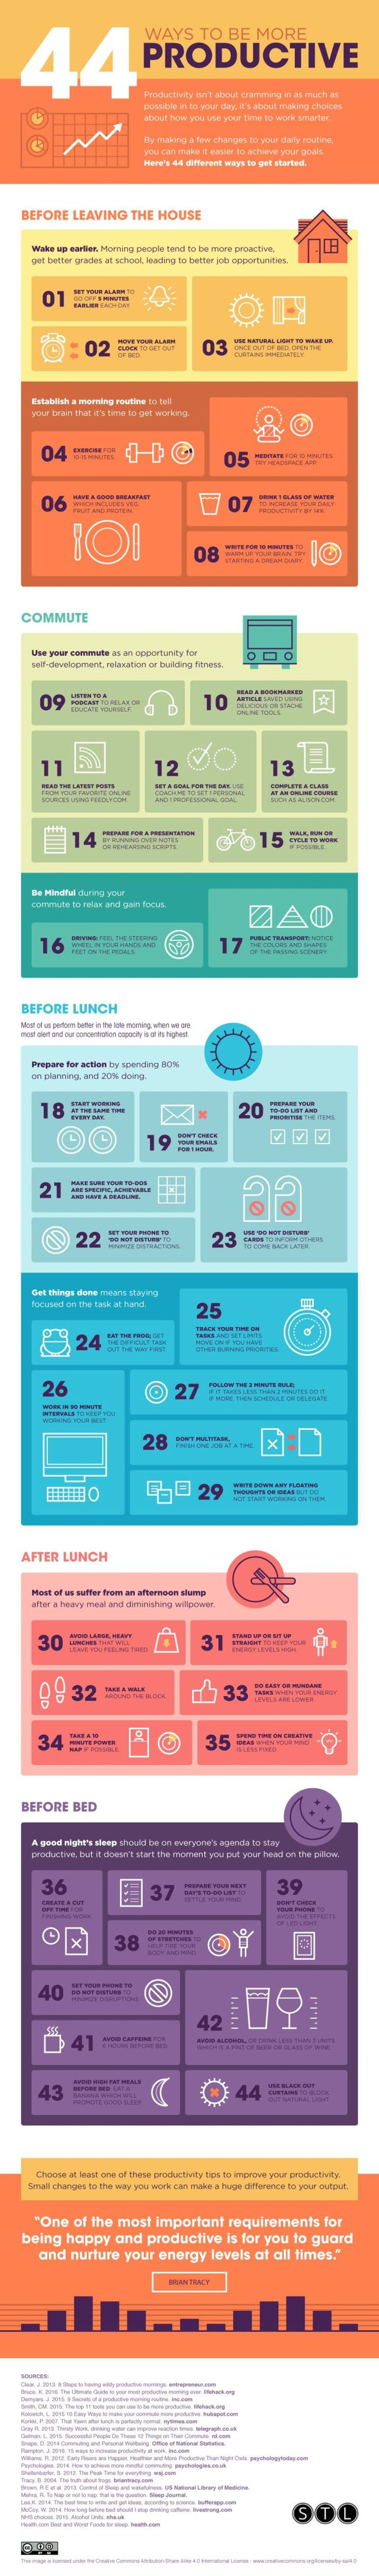 44 Ways To Be More Productive - UltraLinx